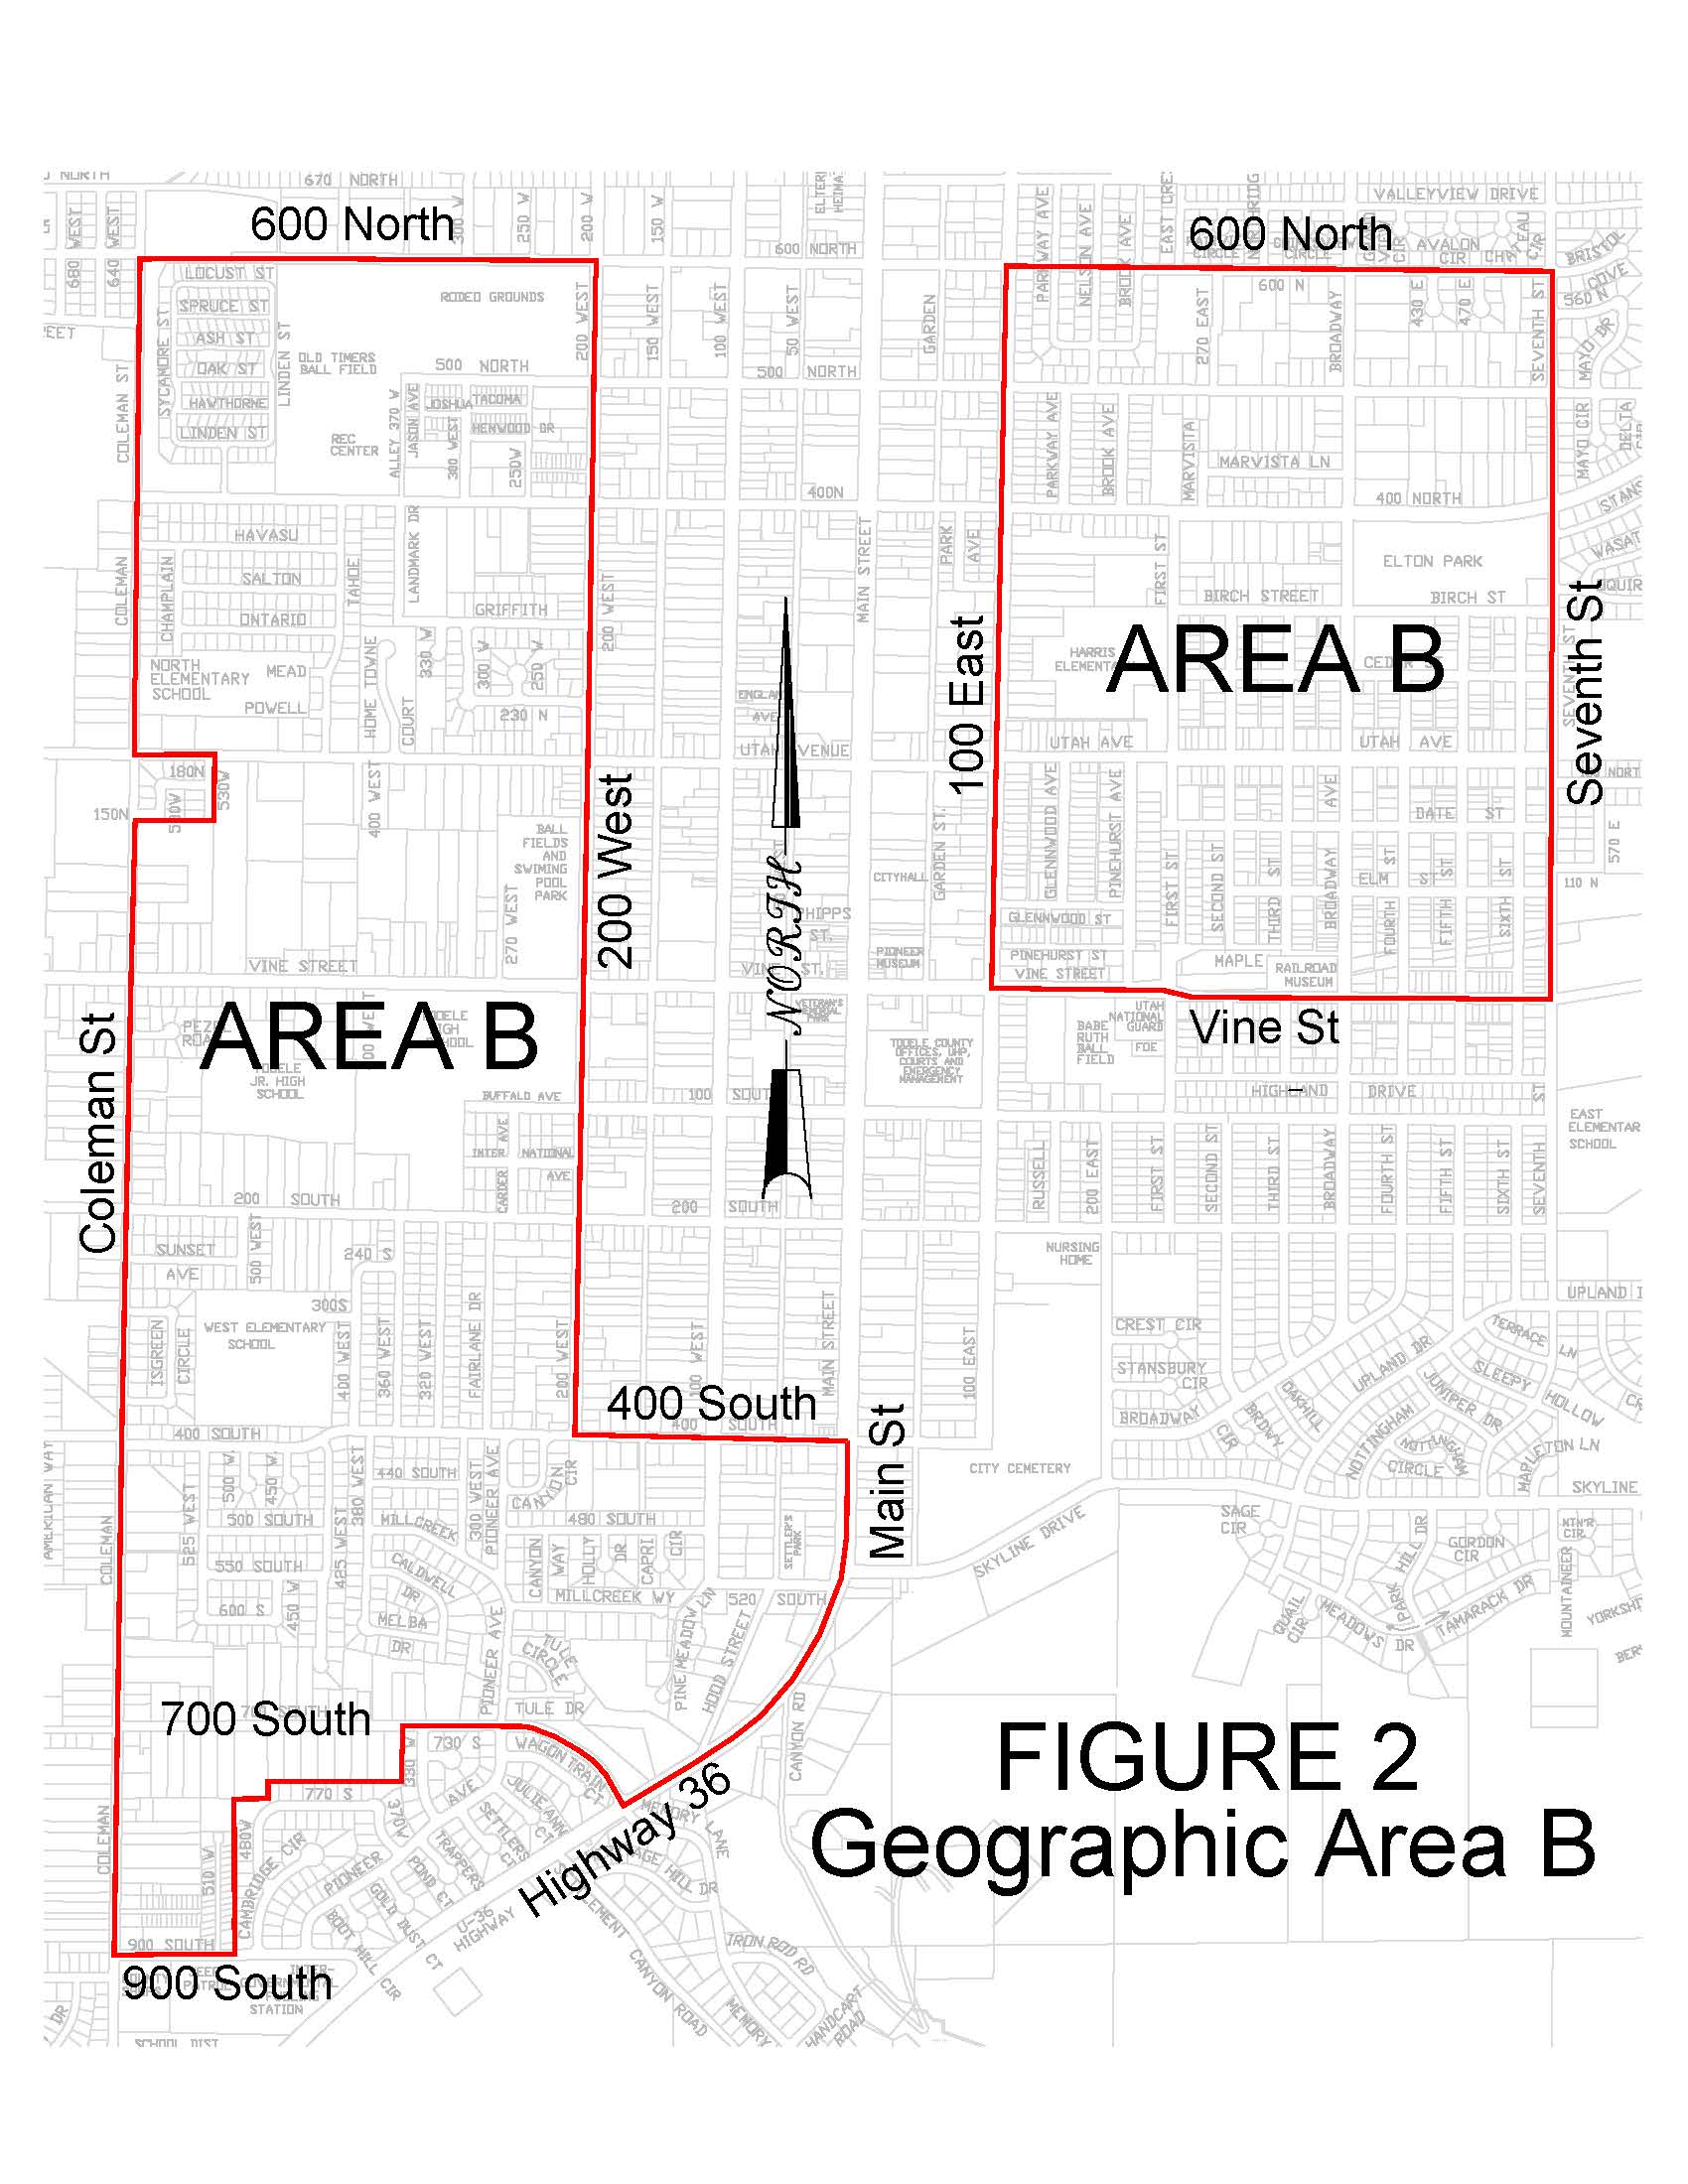 Title7Chapter14 Residential Zoning Districts Figures 1 and 2_Page_2